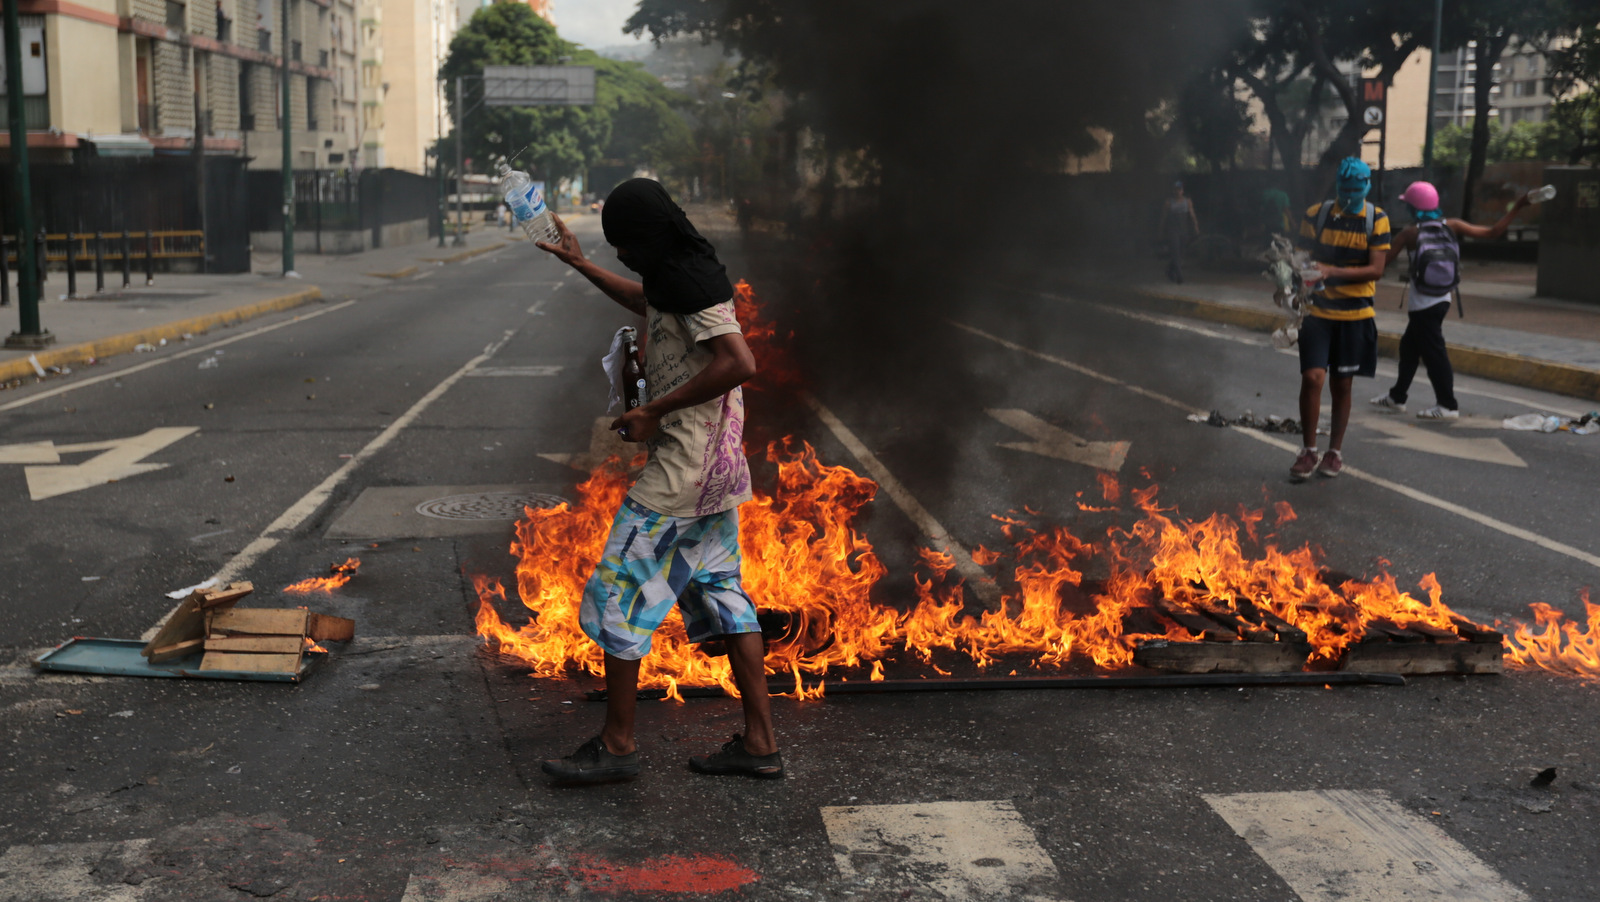 Anti-government protesters oversee a burning barricade in Caracas, Venezuela, June 26, 2017. (AP/Fernando Llano)